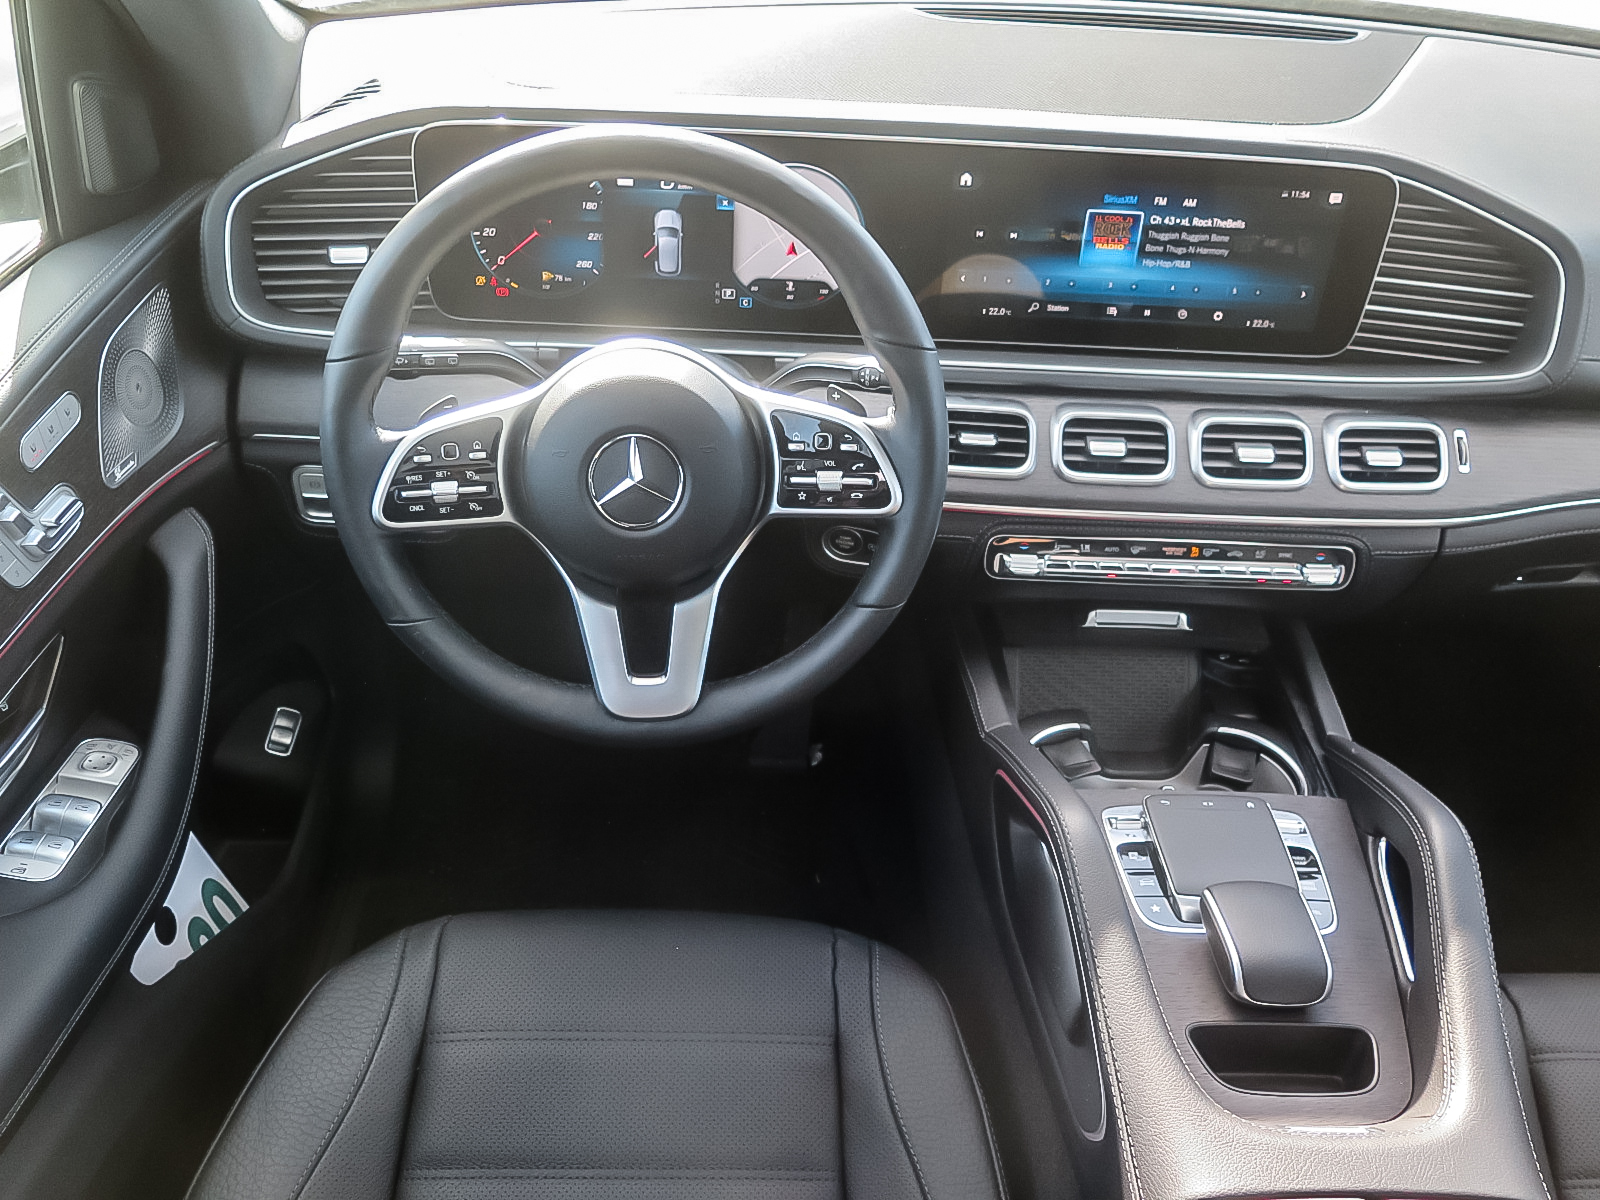 New 2020 Mercedes-Benz GLE350 4MATIC SUV